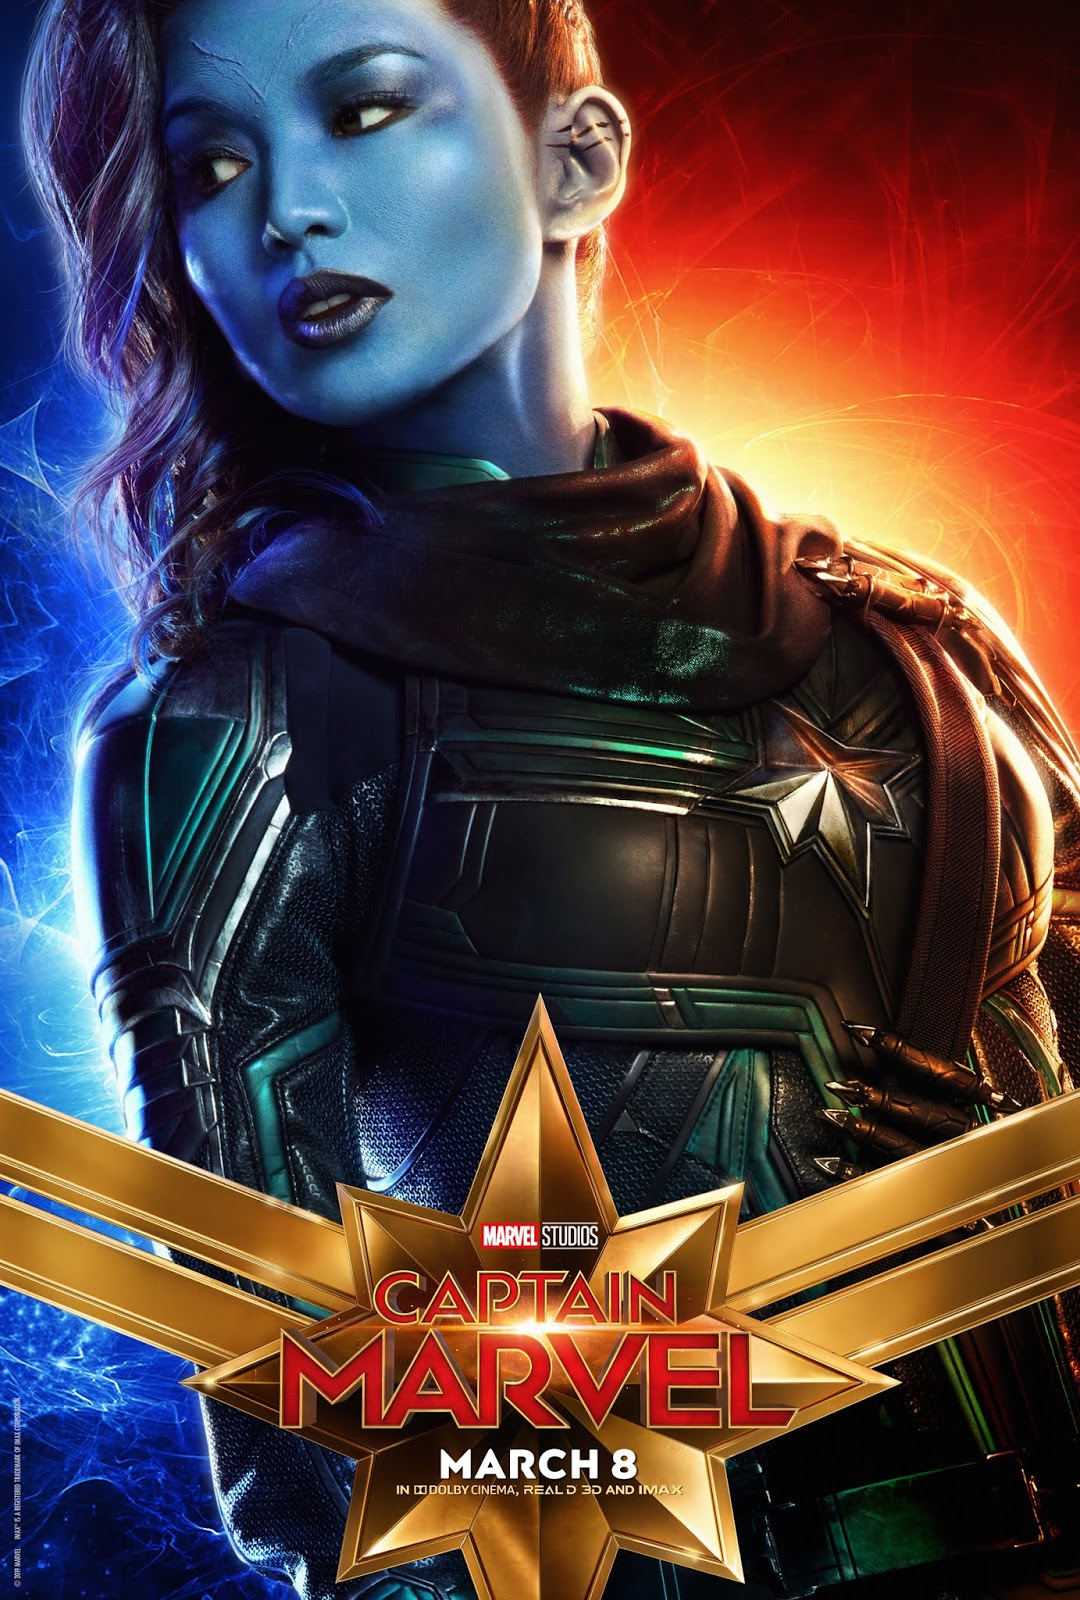 CAPTAIN MARVEL Character Posters - sandwichjohnfilms